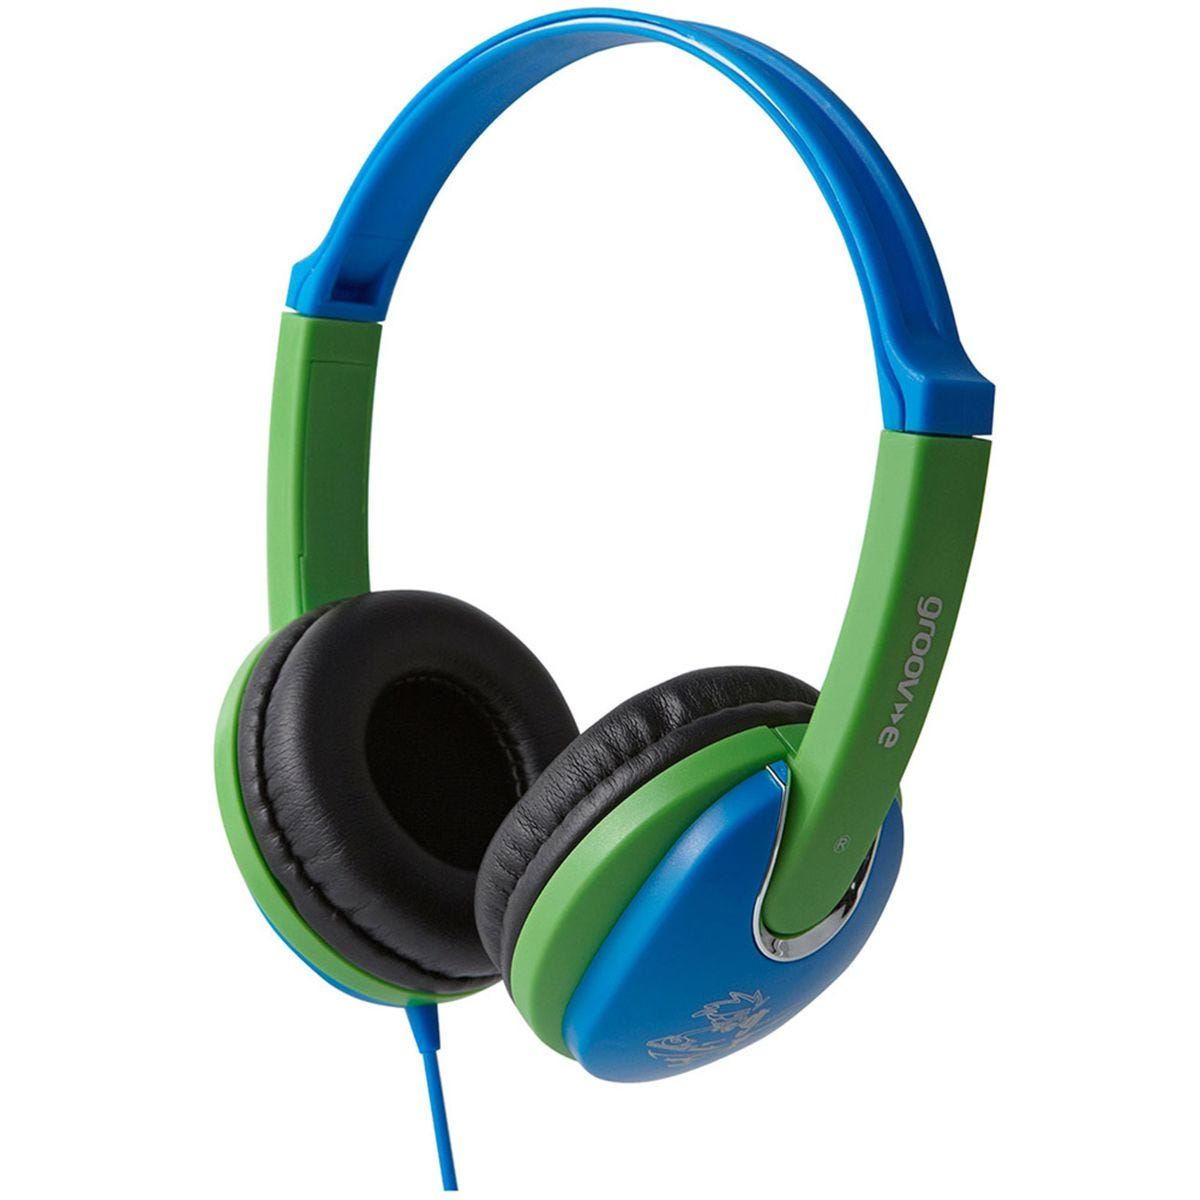 Groov-e Kiddiez DJ Style Headphone with 85dB Volume Limiter - Blue/Green